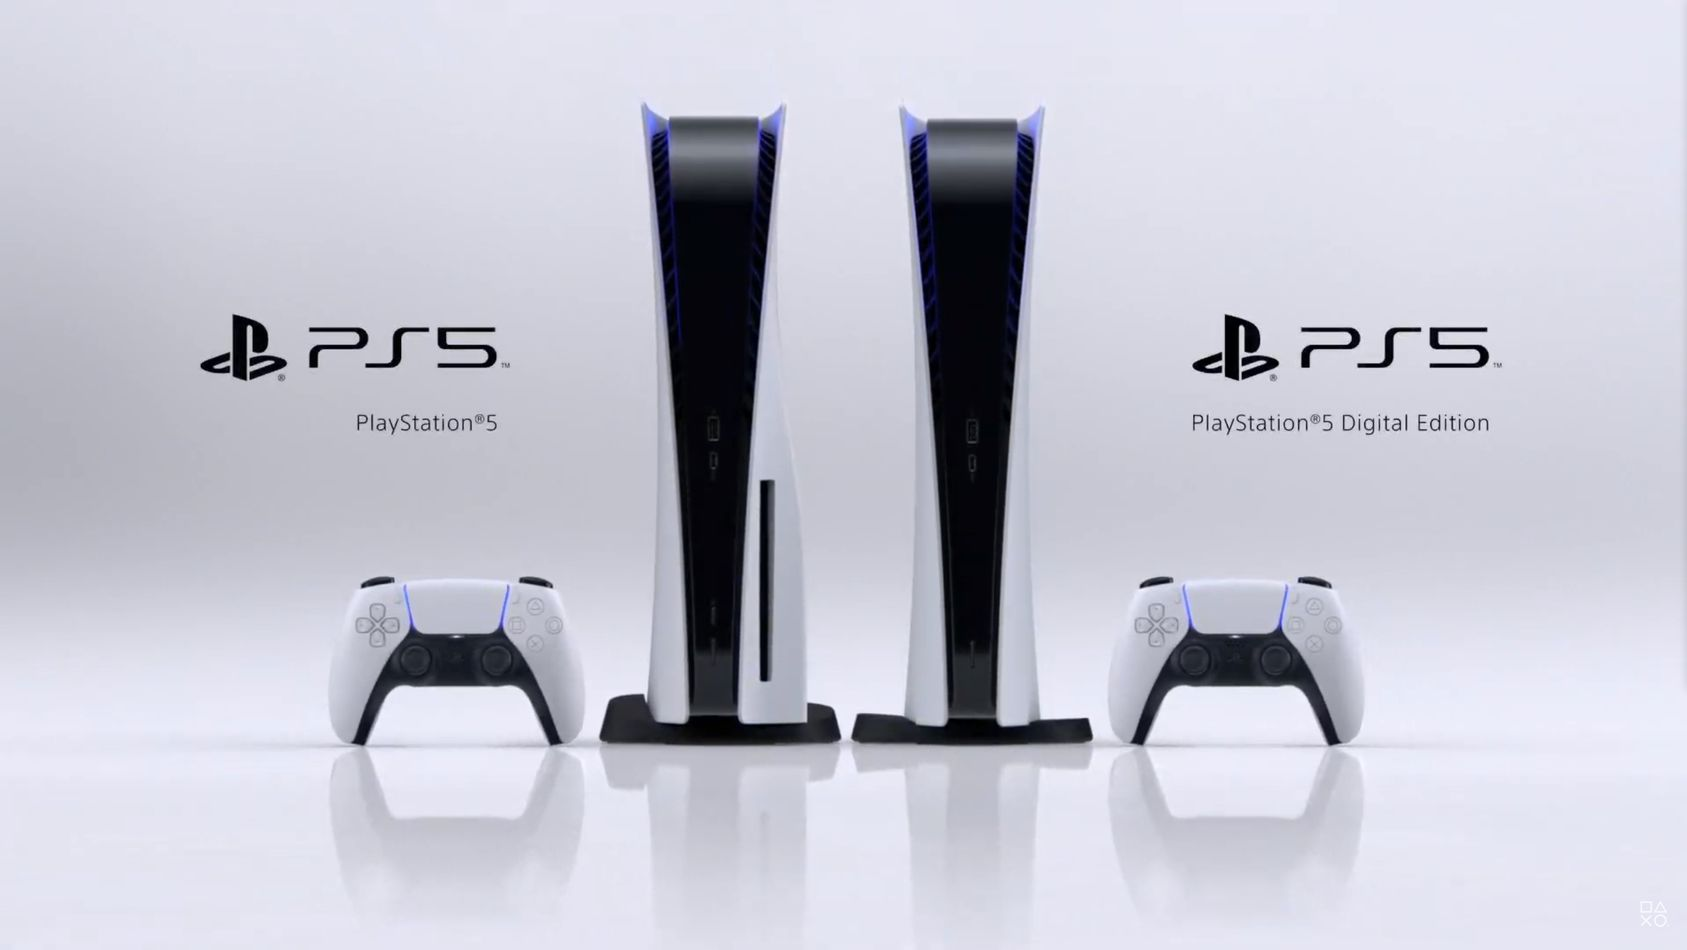 PS5 Base Console and PS5 Digital Edition Console